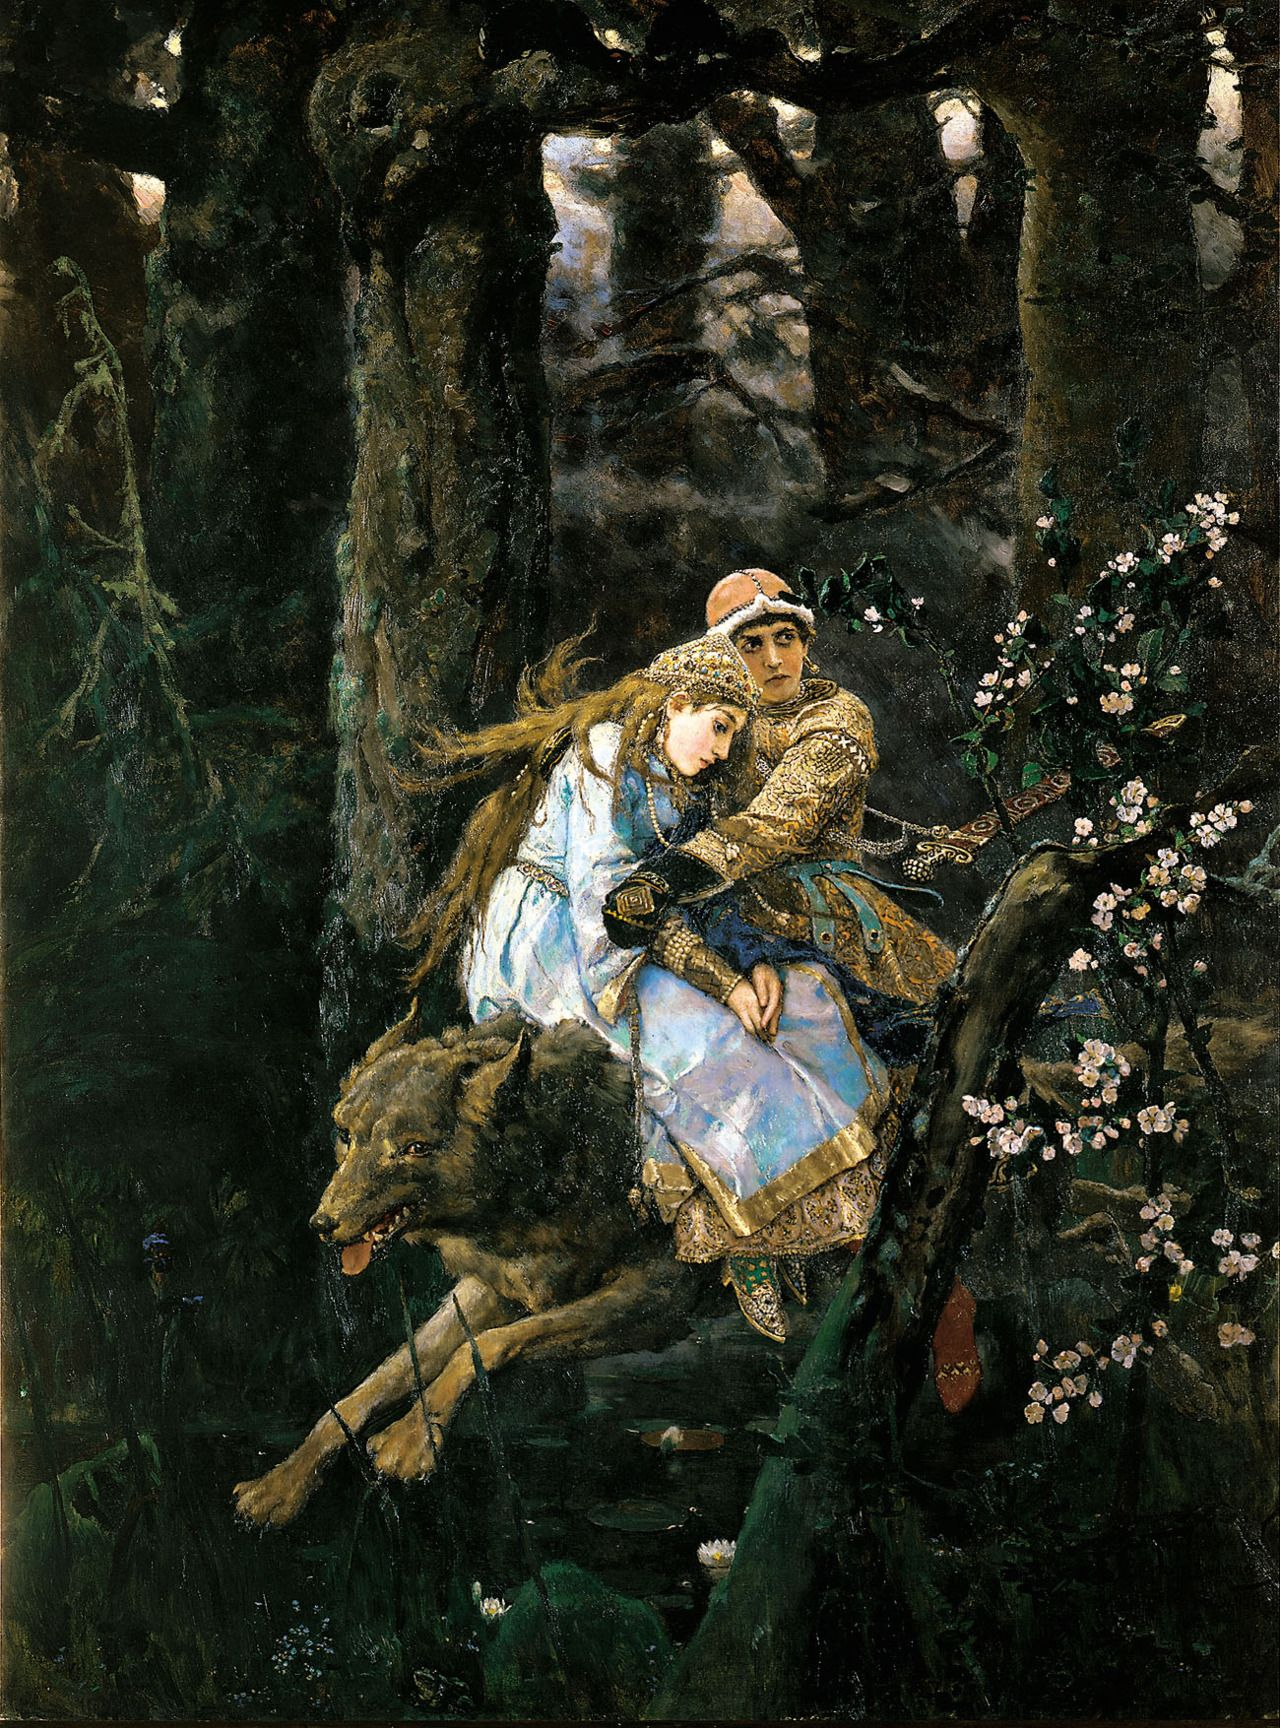 Ivan Tsarevich riding the Gray Wolf (Иван-царевич на Сером Волке) by Viktor Mikhaylovich Vasnetsov, 1889.